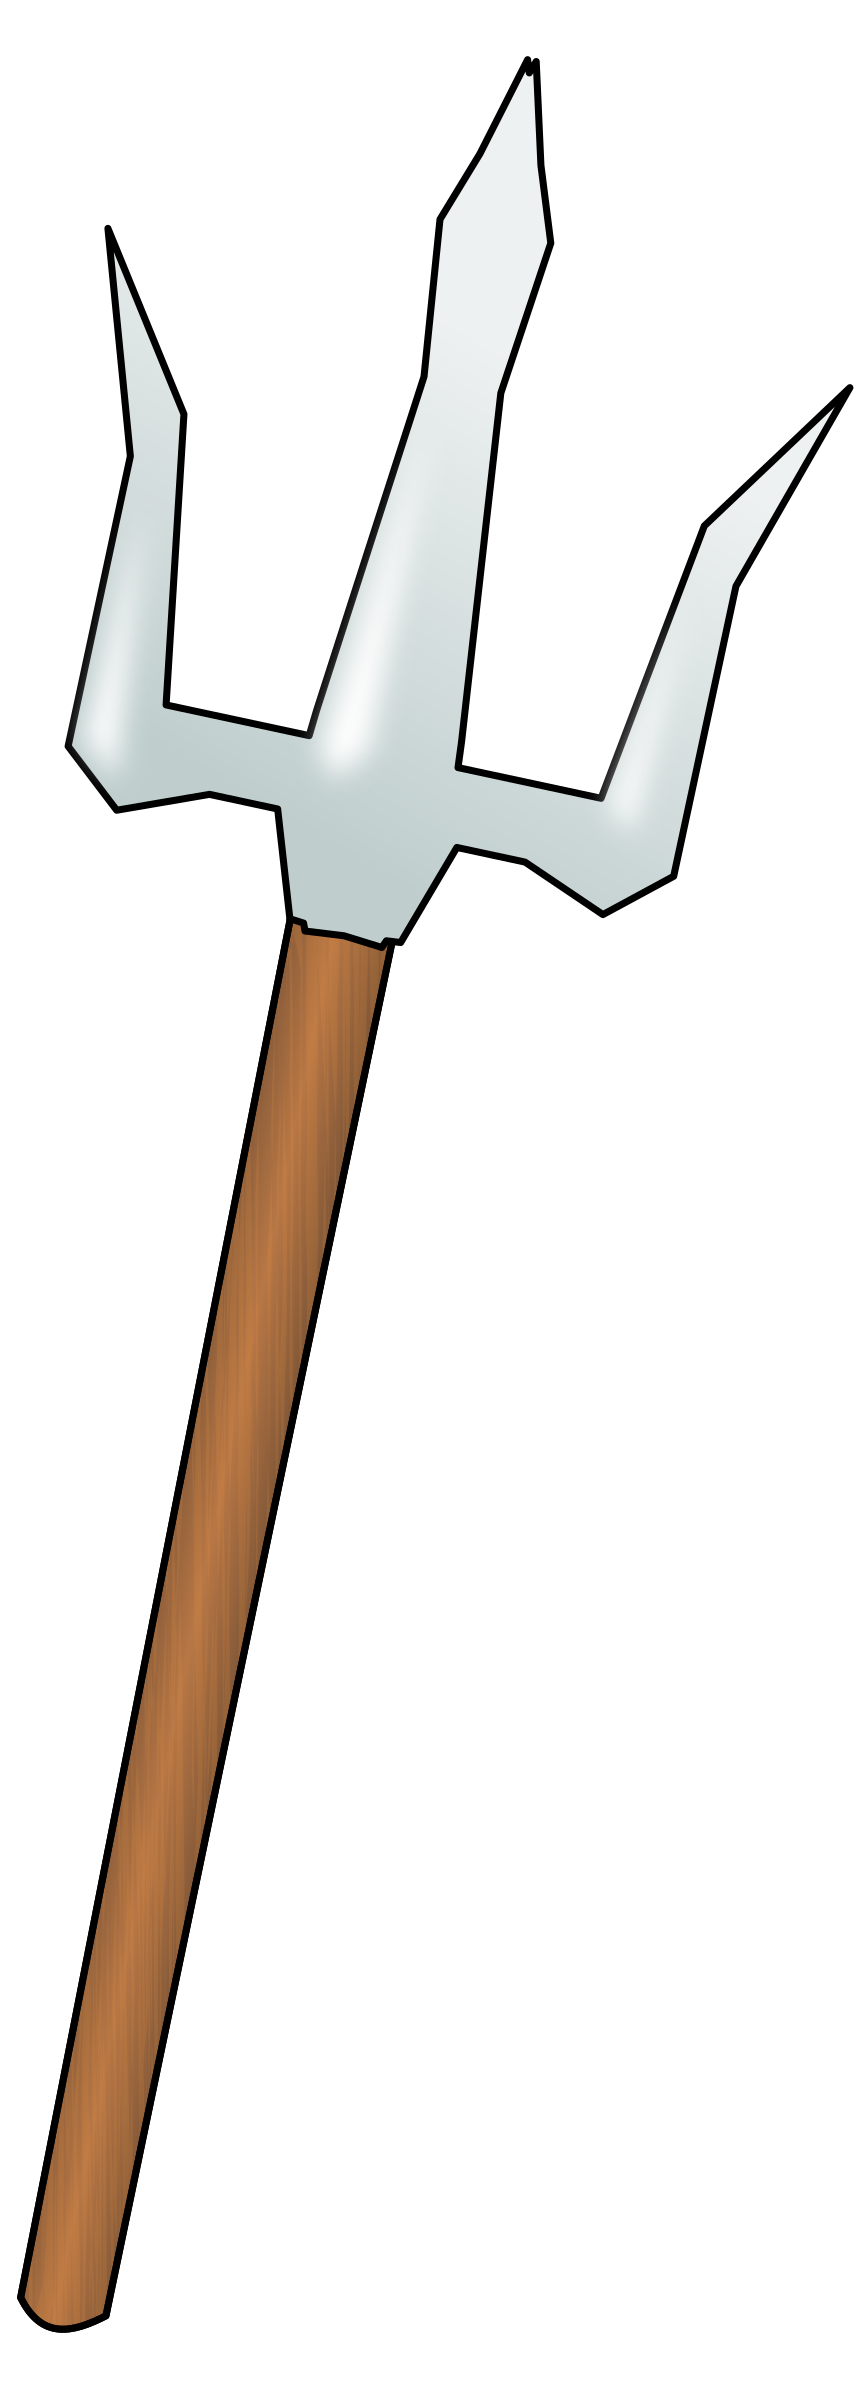 Trident clipart weapon. Big image png